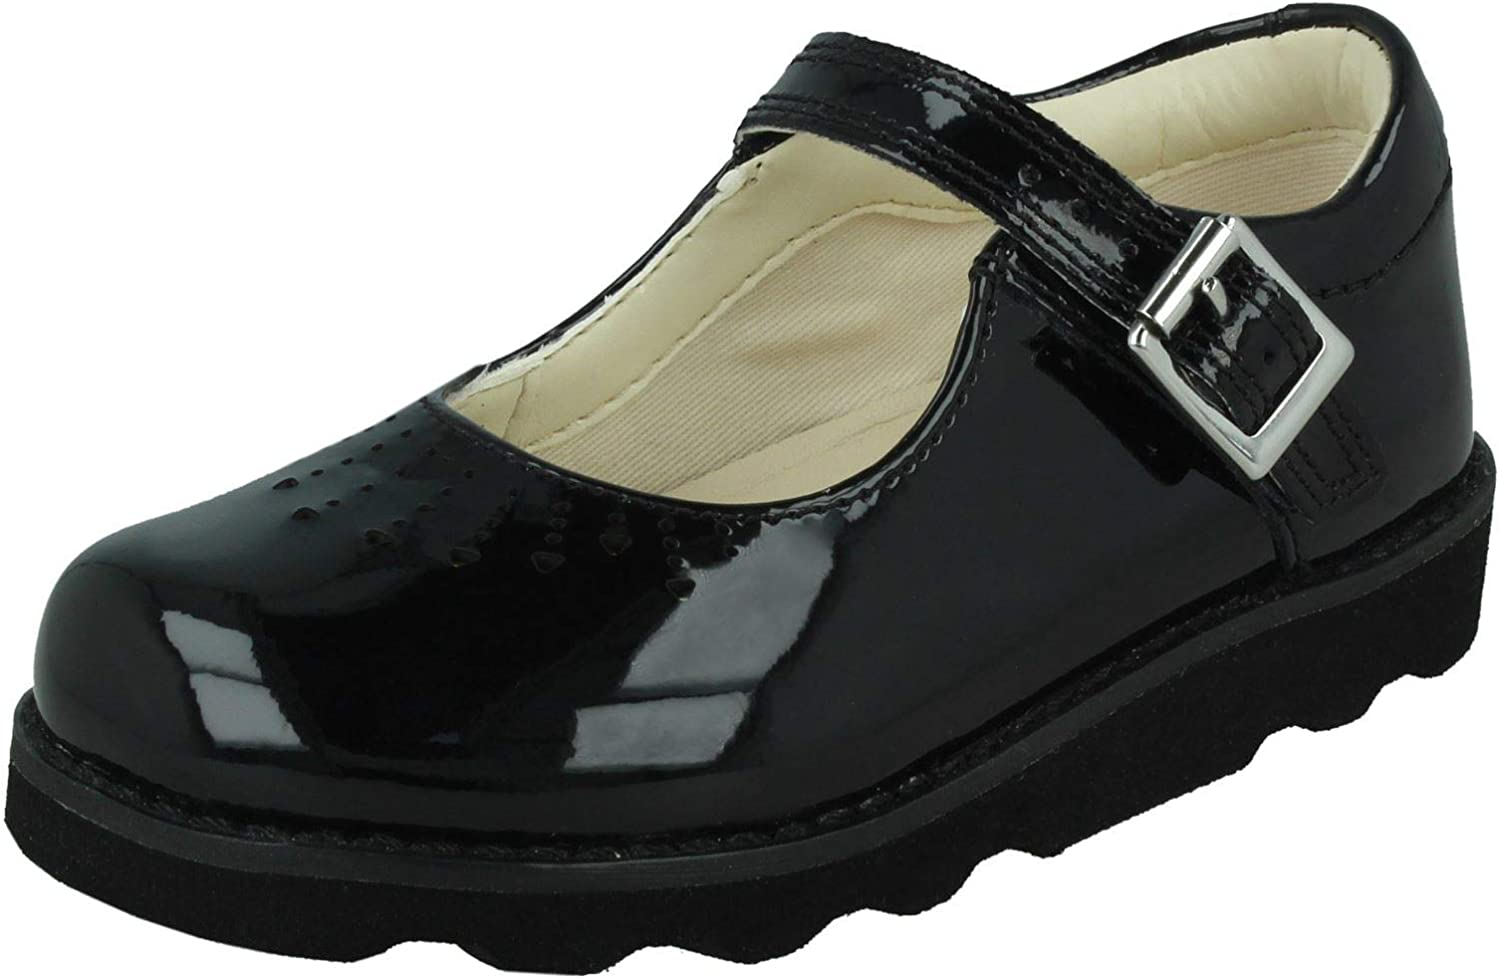 Clarks Girl's Loafers